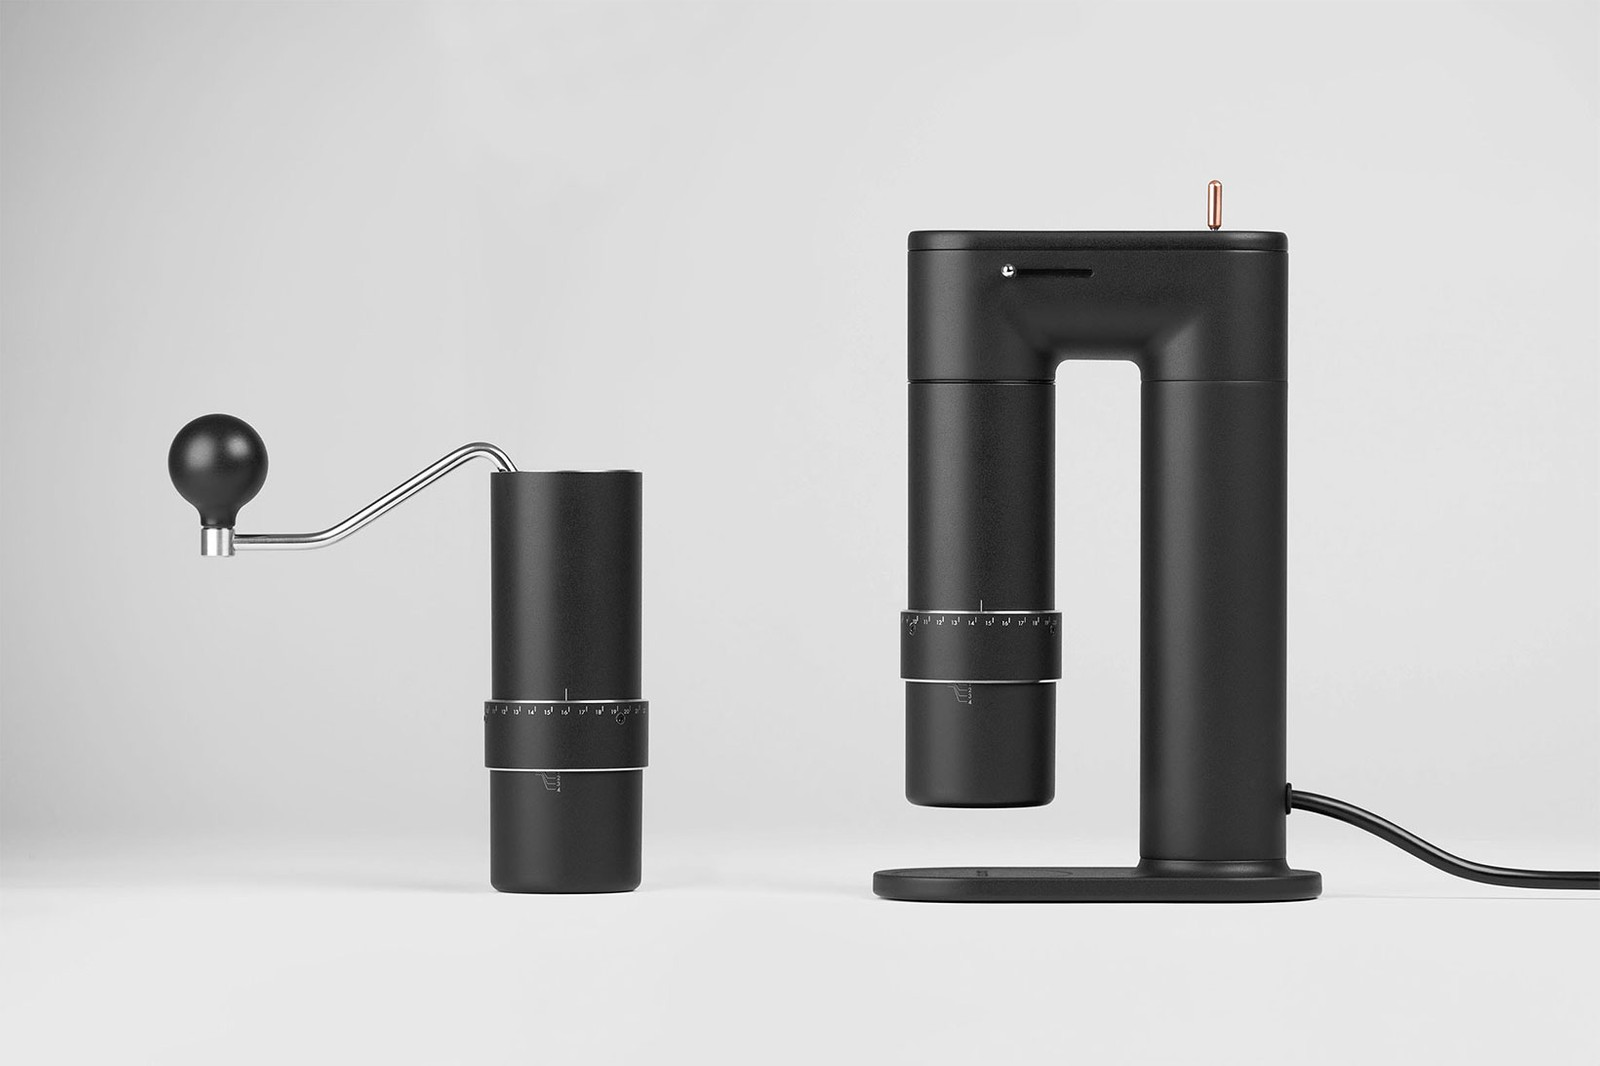 goat story arco coffee grinder electric hand 2-in-1 black minimal design homeware launch